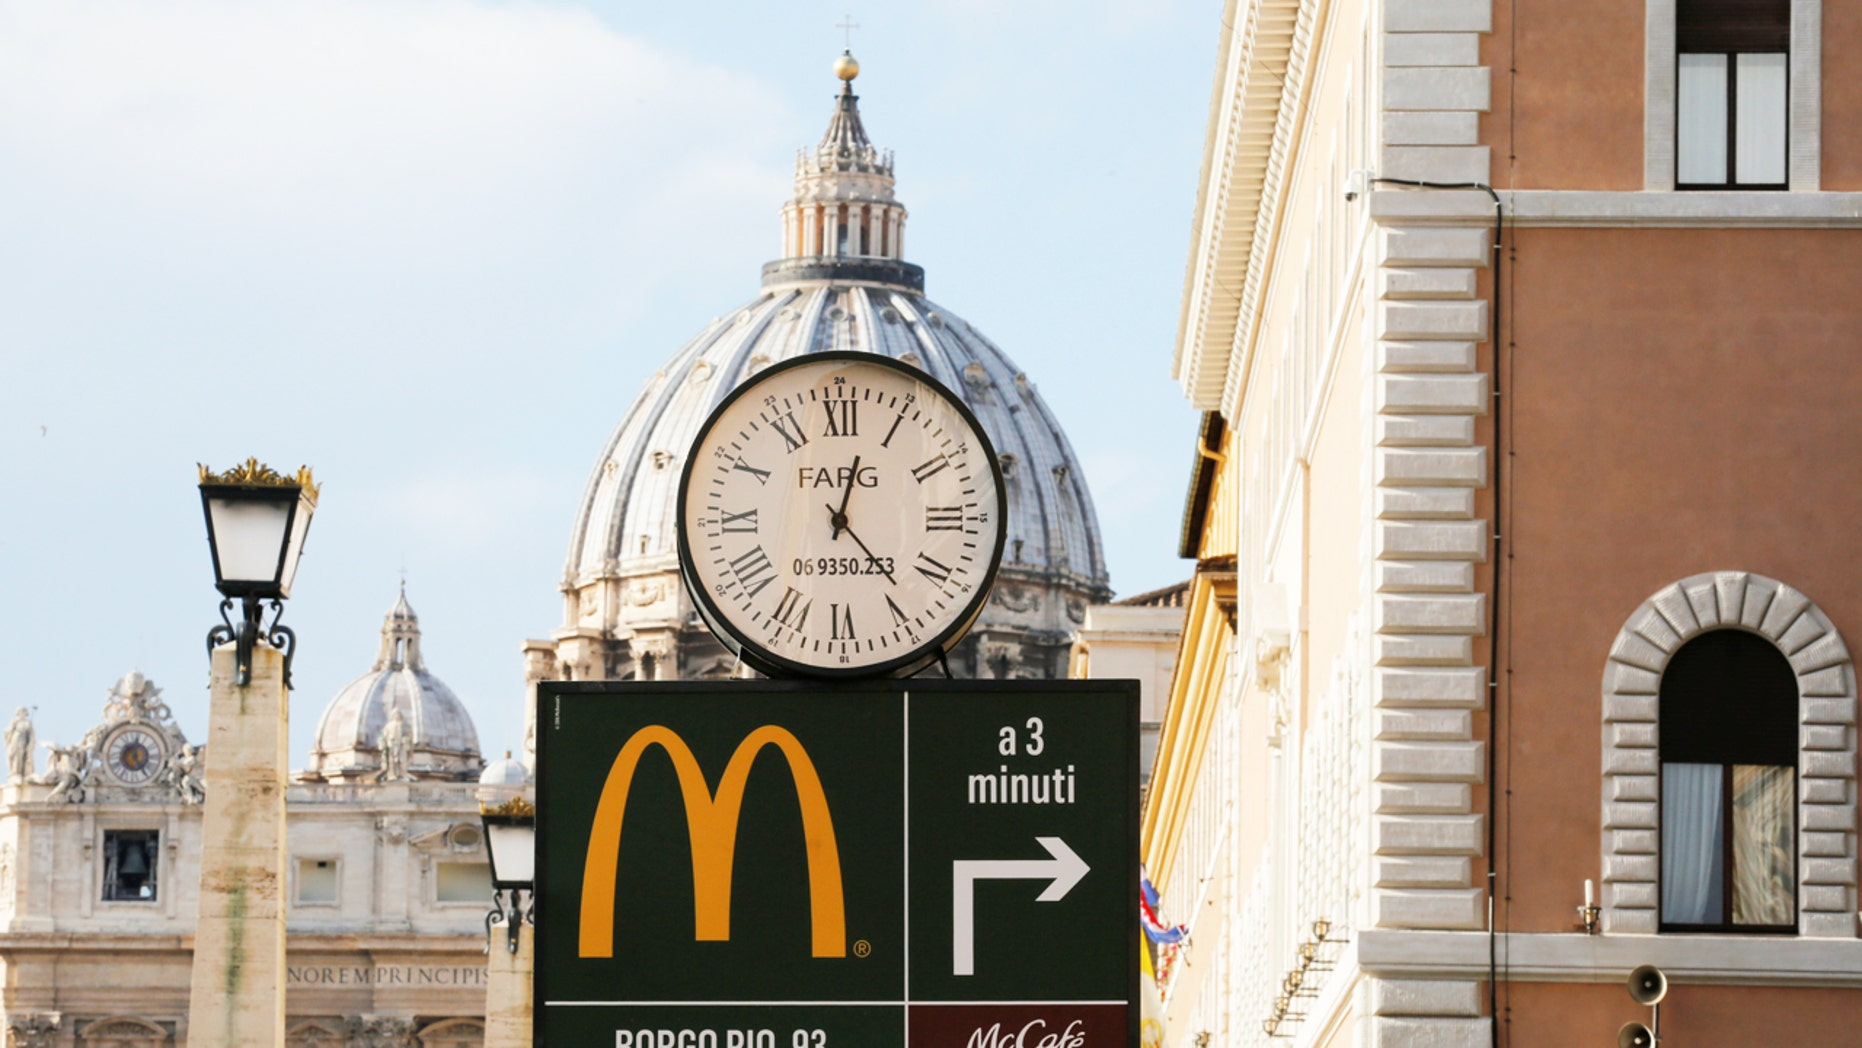 A McDonald's sign is seen at Via della Conciliazione street in Rome, Italy in front of Vatican City's St. Peter's Square Jan. 3, 2017.